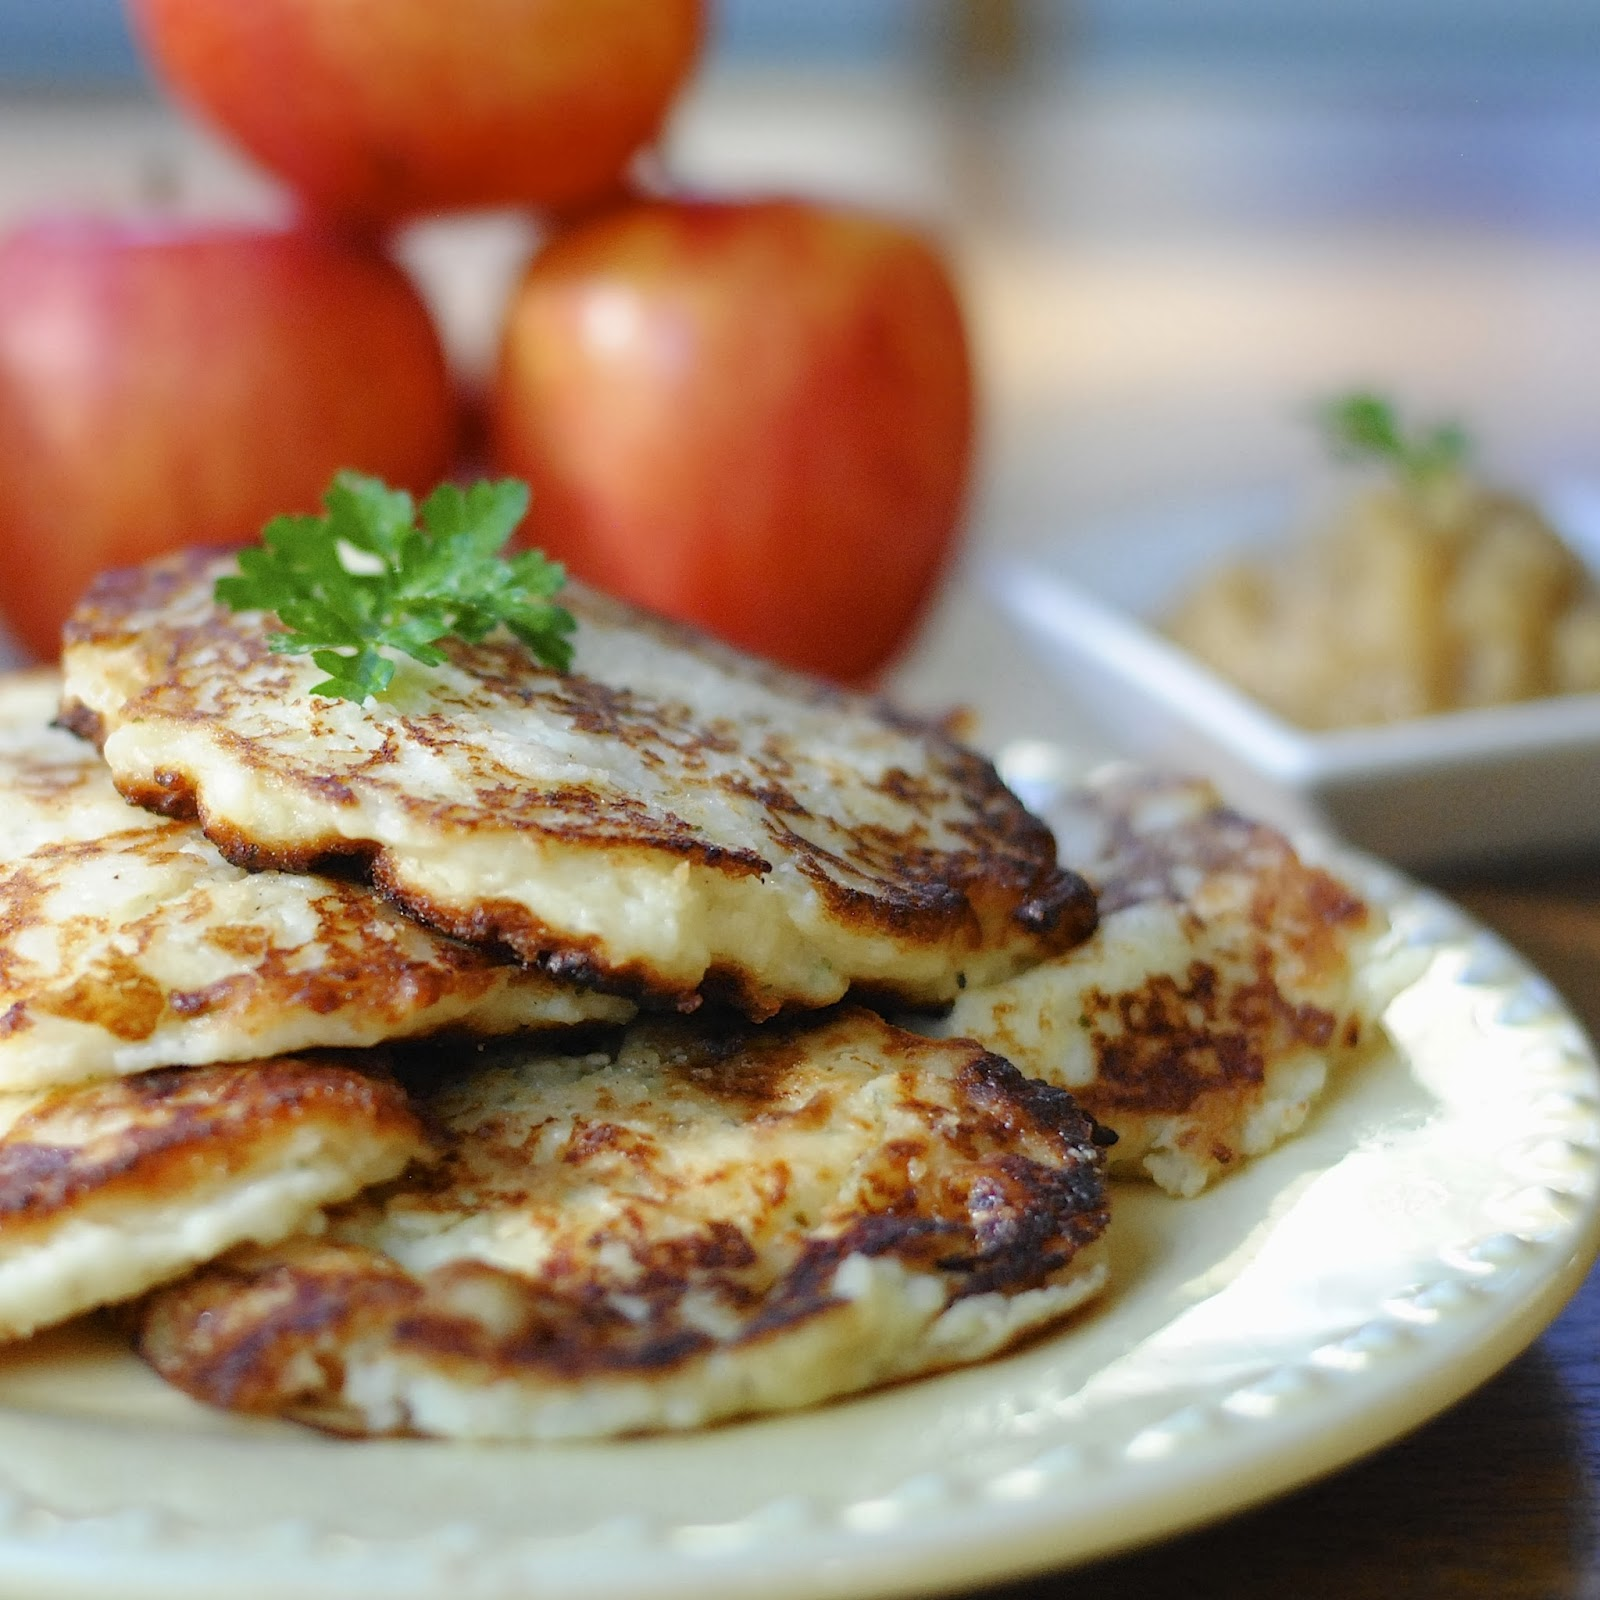 Mashed Potato Pancakes With Homemade Apple Sauce